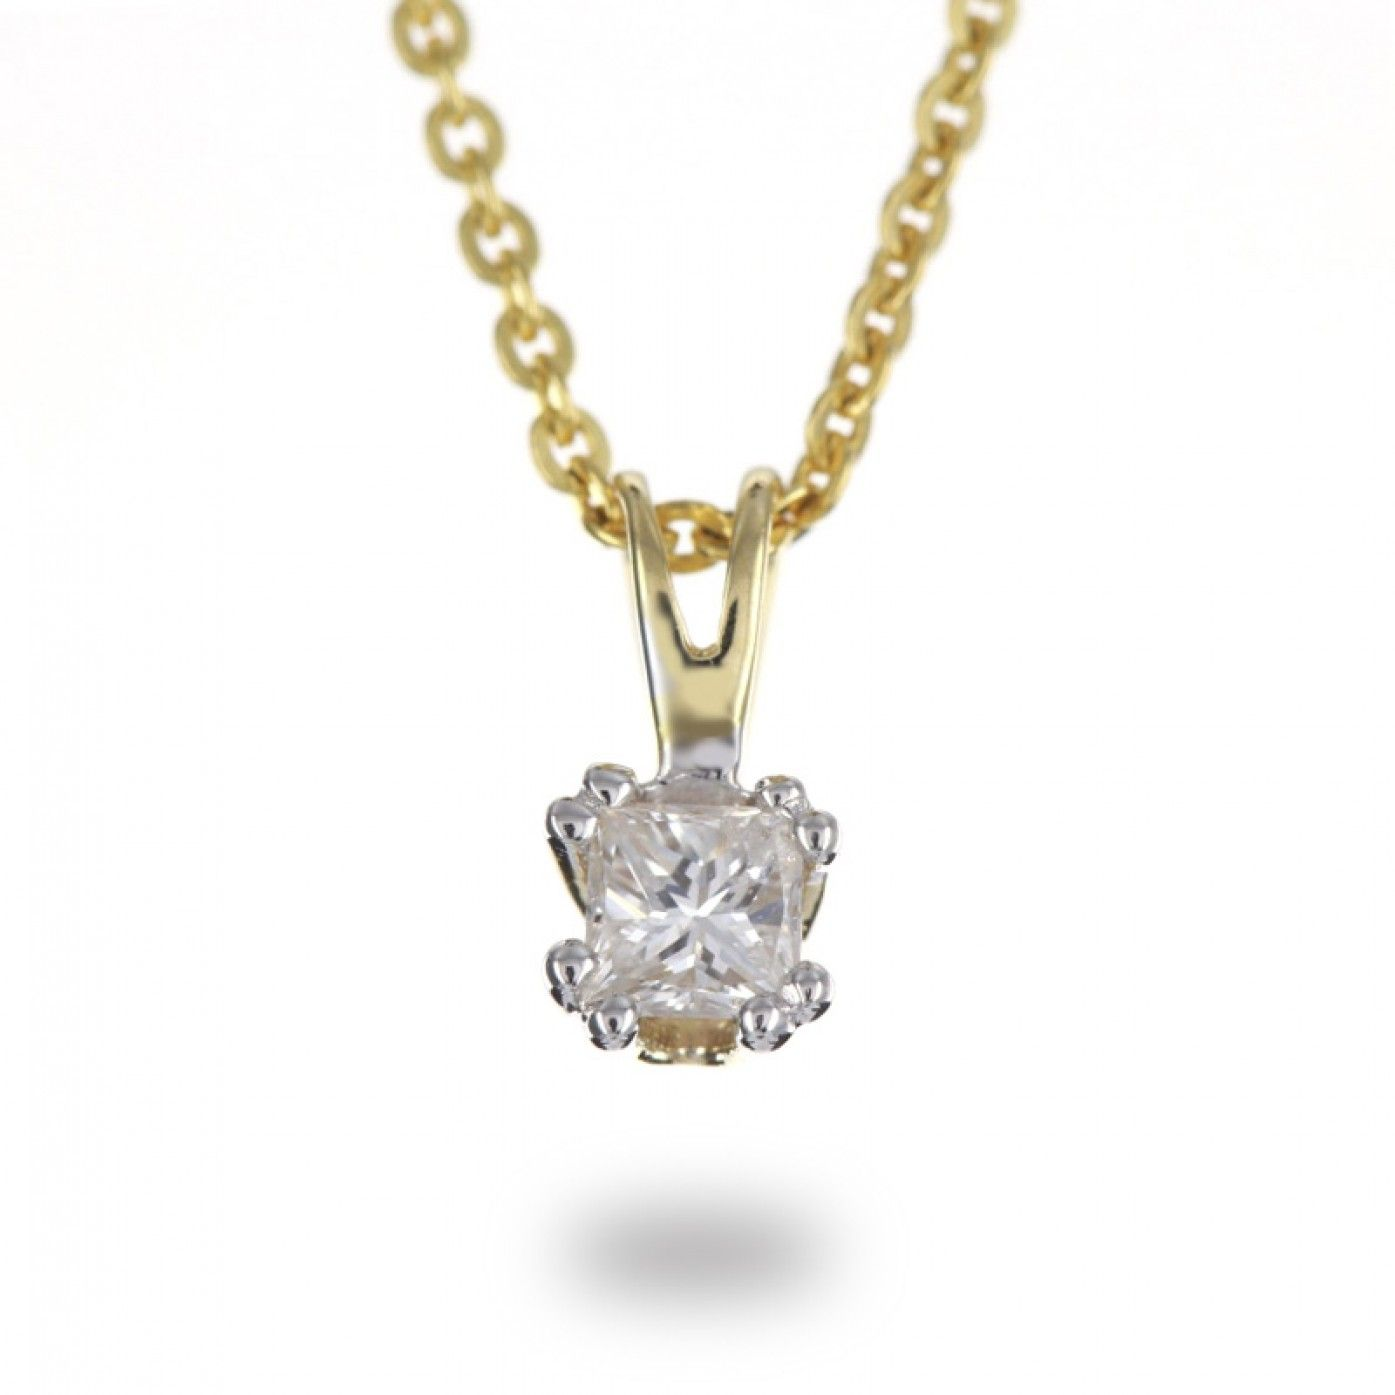 Solitaire ct double claw princess diamond pendant in k yellow